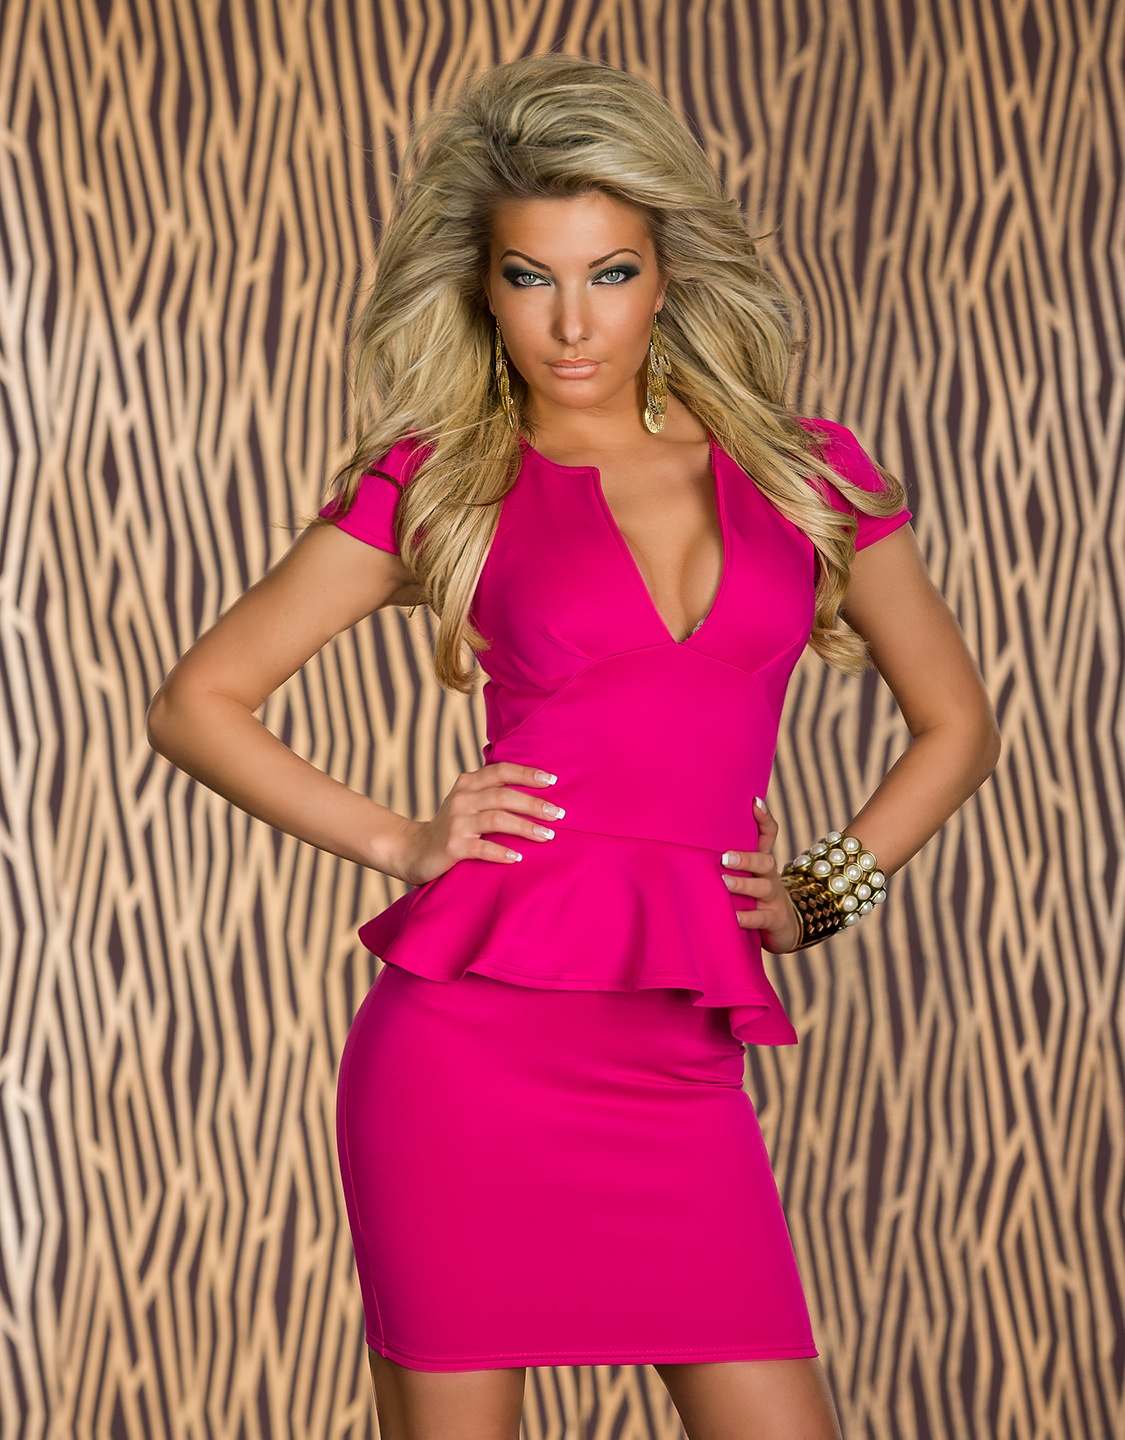 Pink Cut Low-Necked Peplum Dress With Short Sleeves